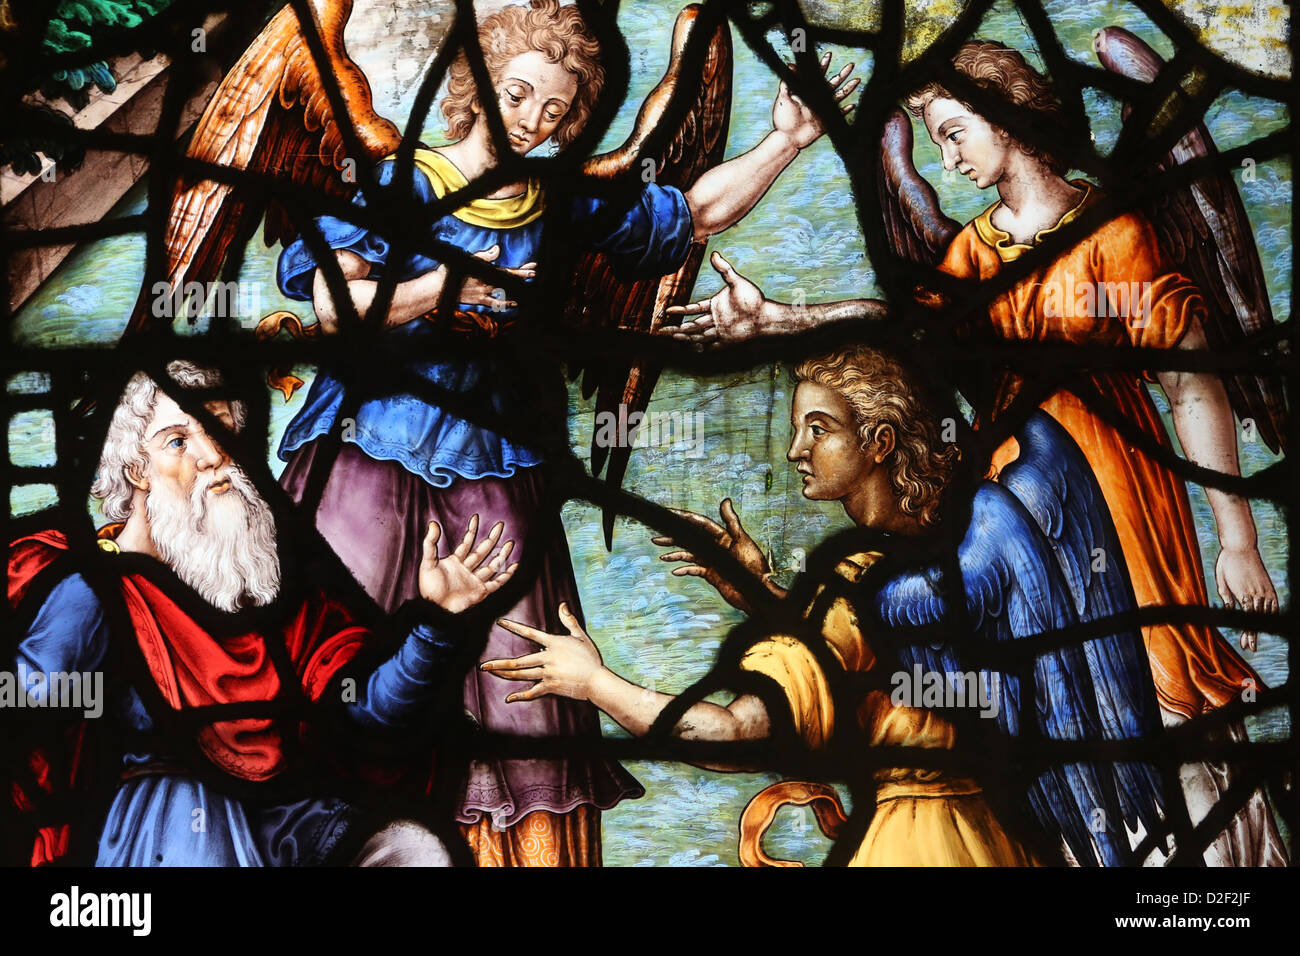 Saint Etienne du Mont church. 17th century stained glass. Abraham and the angels Paris. France. - Stock Image